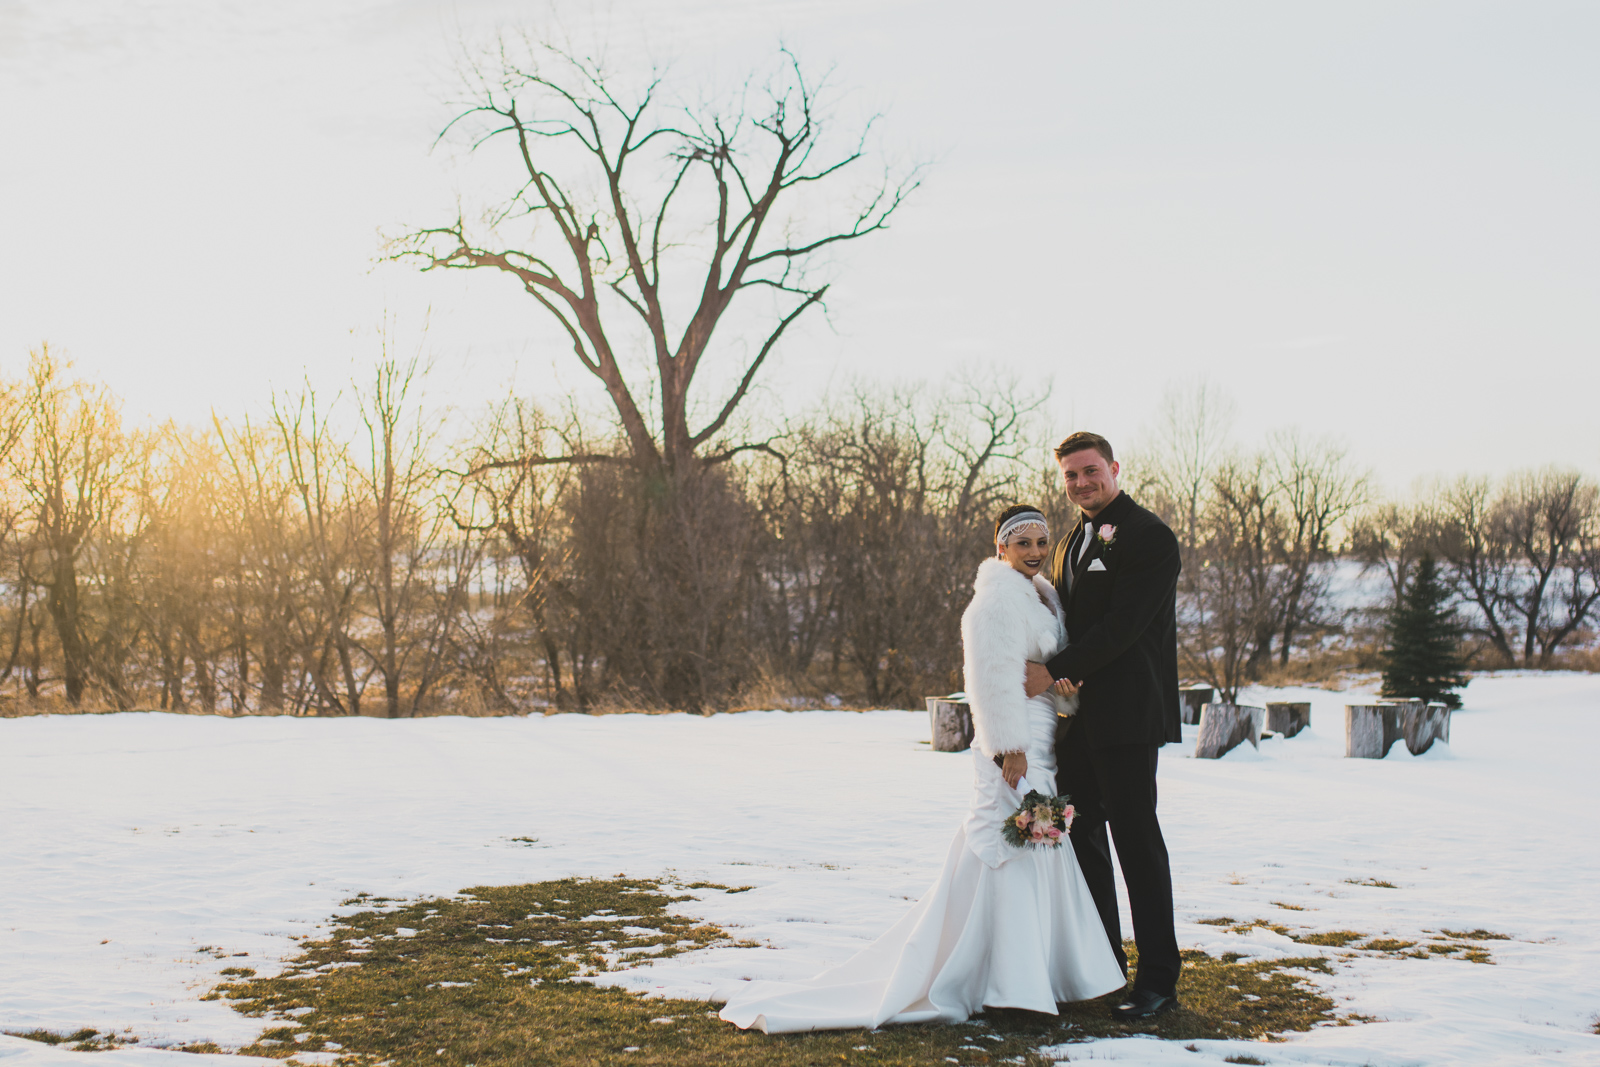 winterwedding_kfcreativestudio-20.jpg